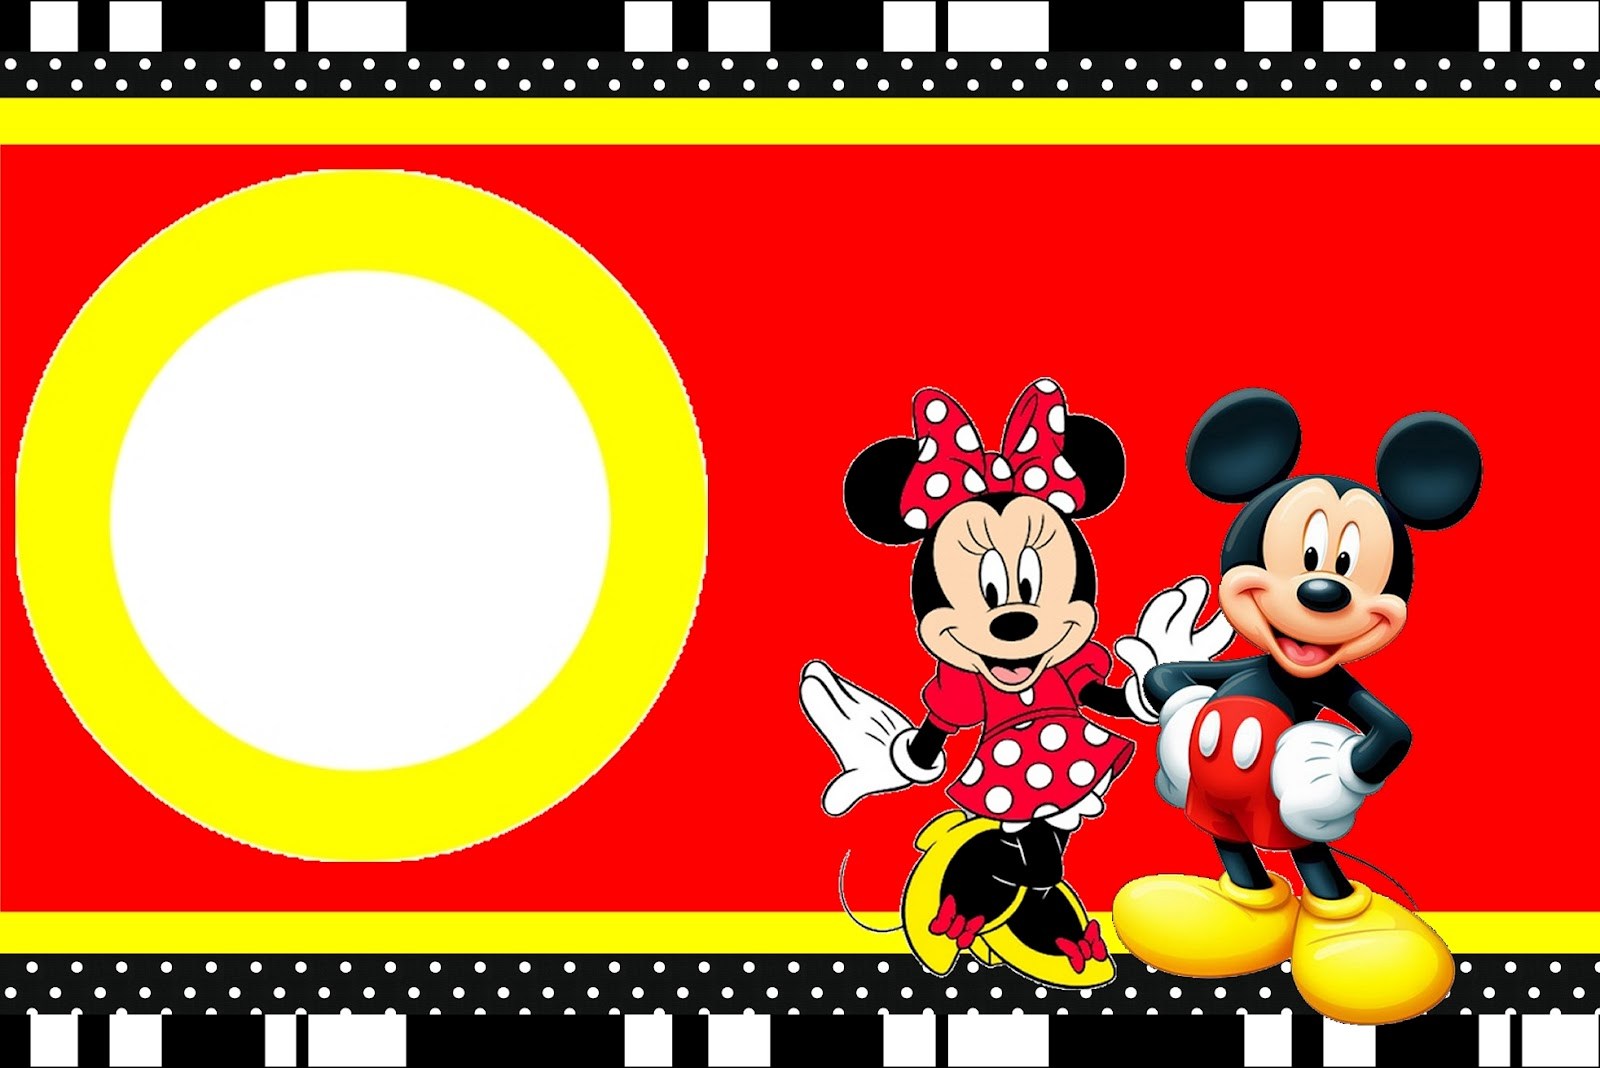 Invitation Mickey Mouse Clubhouse is best invitation design